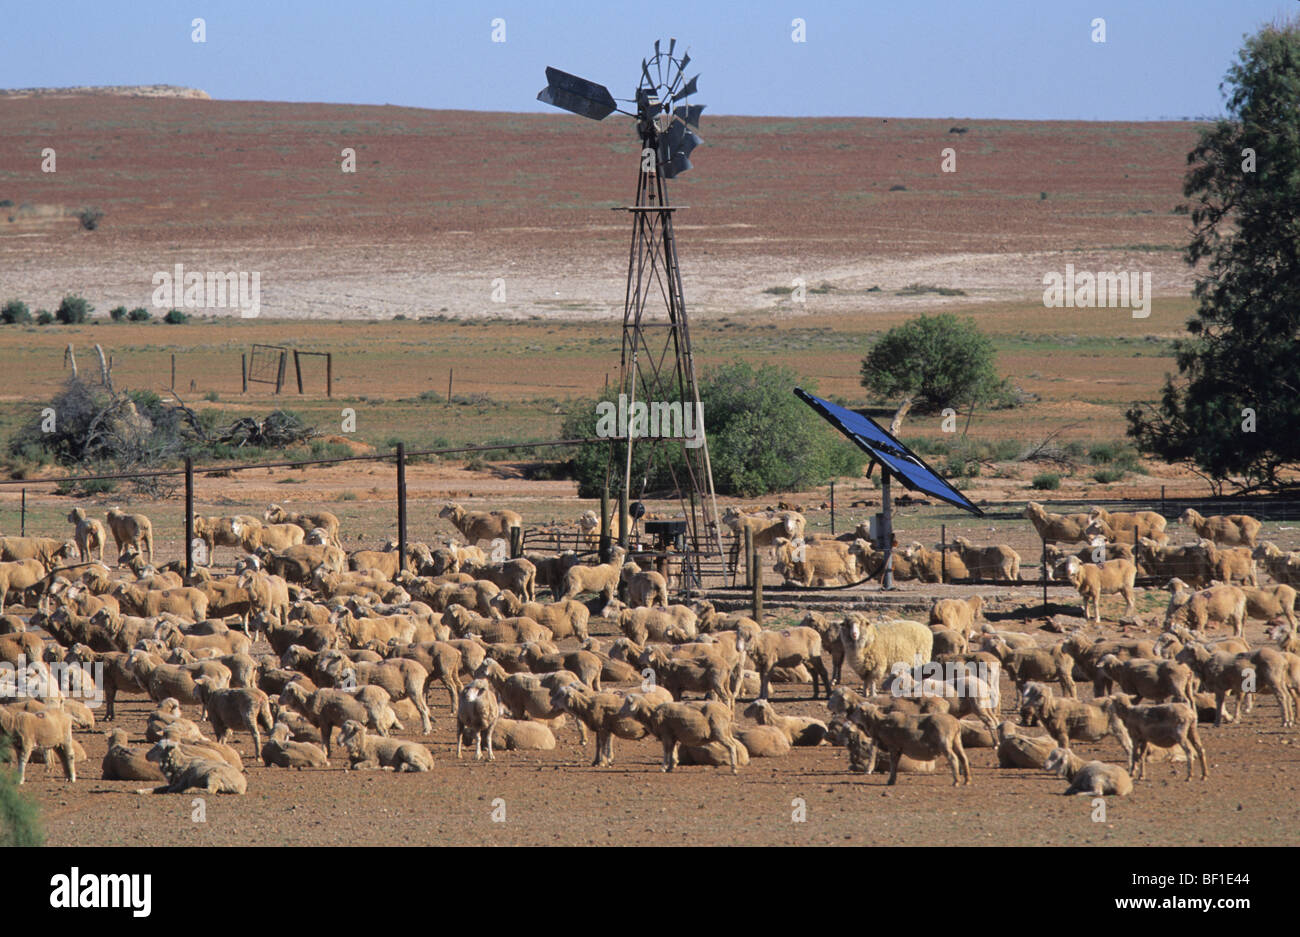 australian outback  sheep ranch  solar and wind power and water stock photo  royalty free image